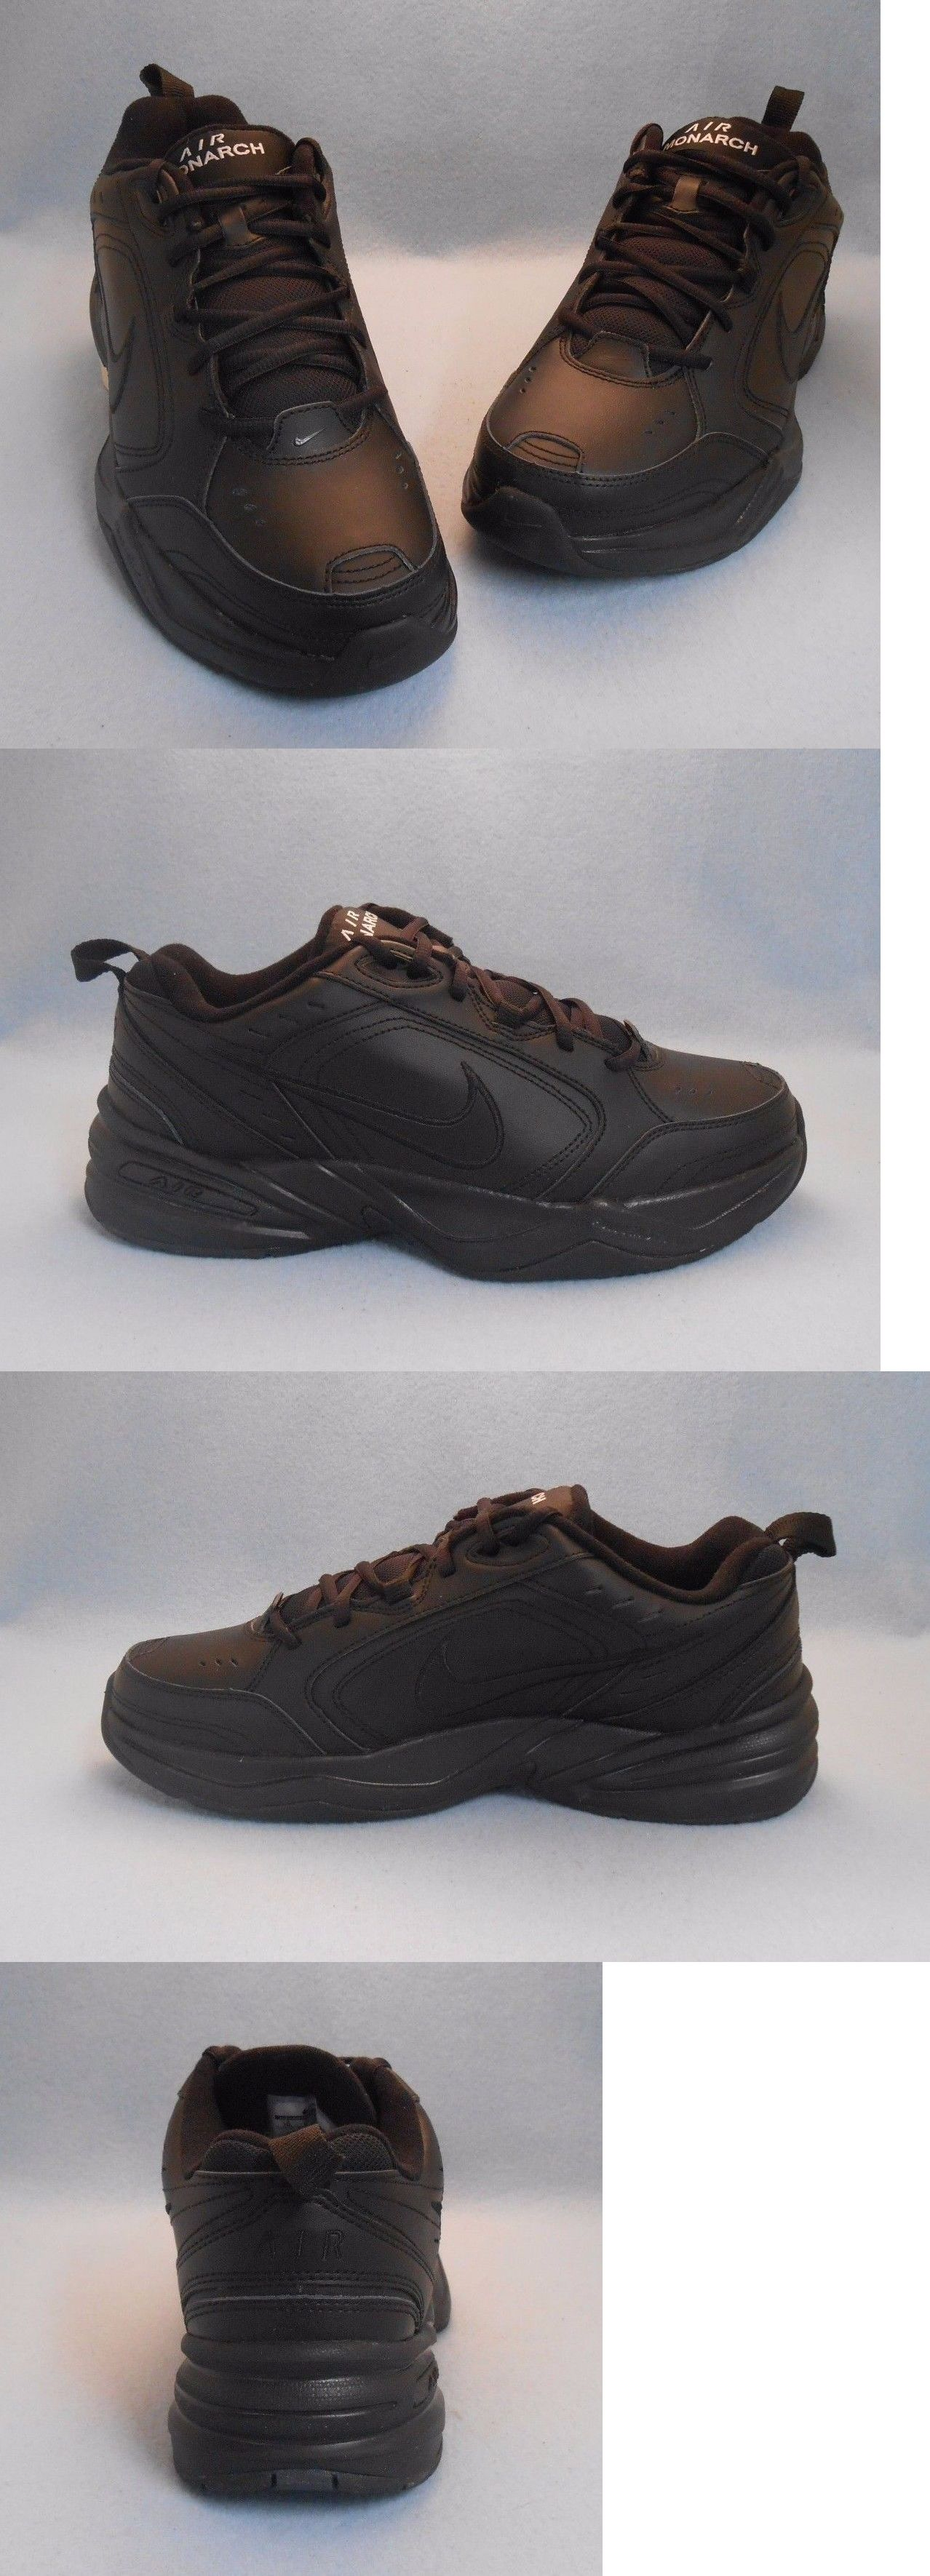 Men Shoes: Nike Air Monarch Iv Men S Walking Shoes 415445 001 (D)